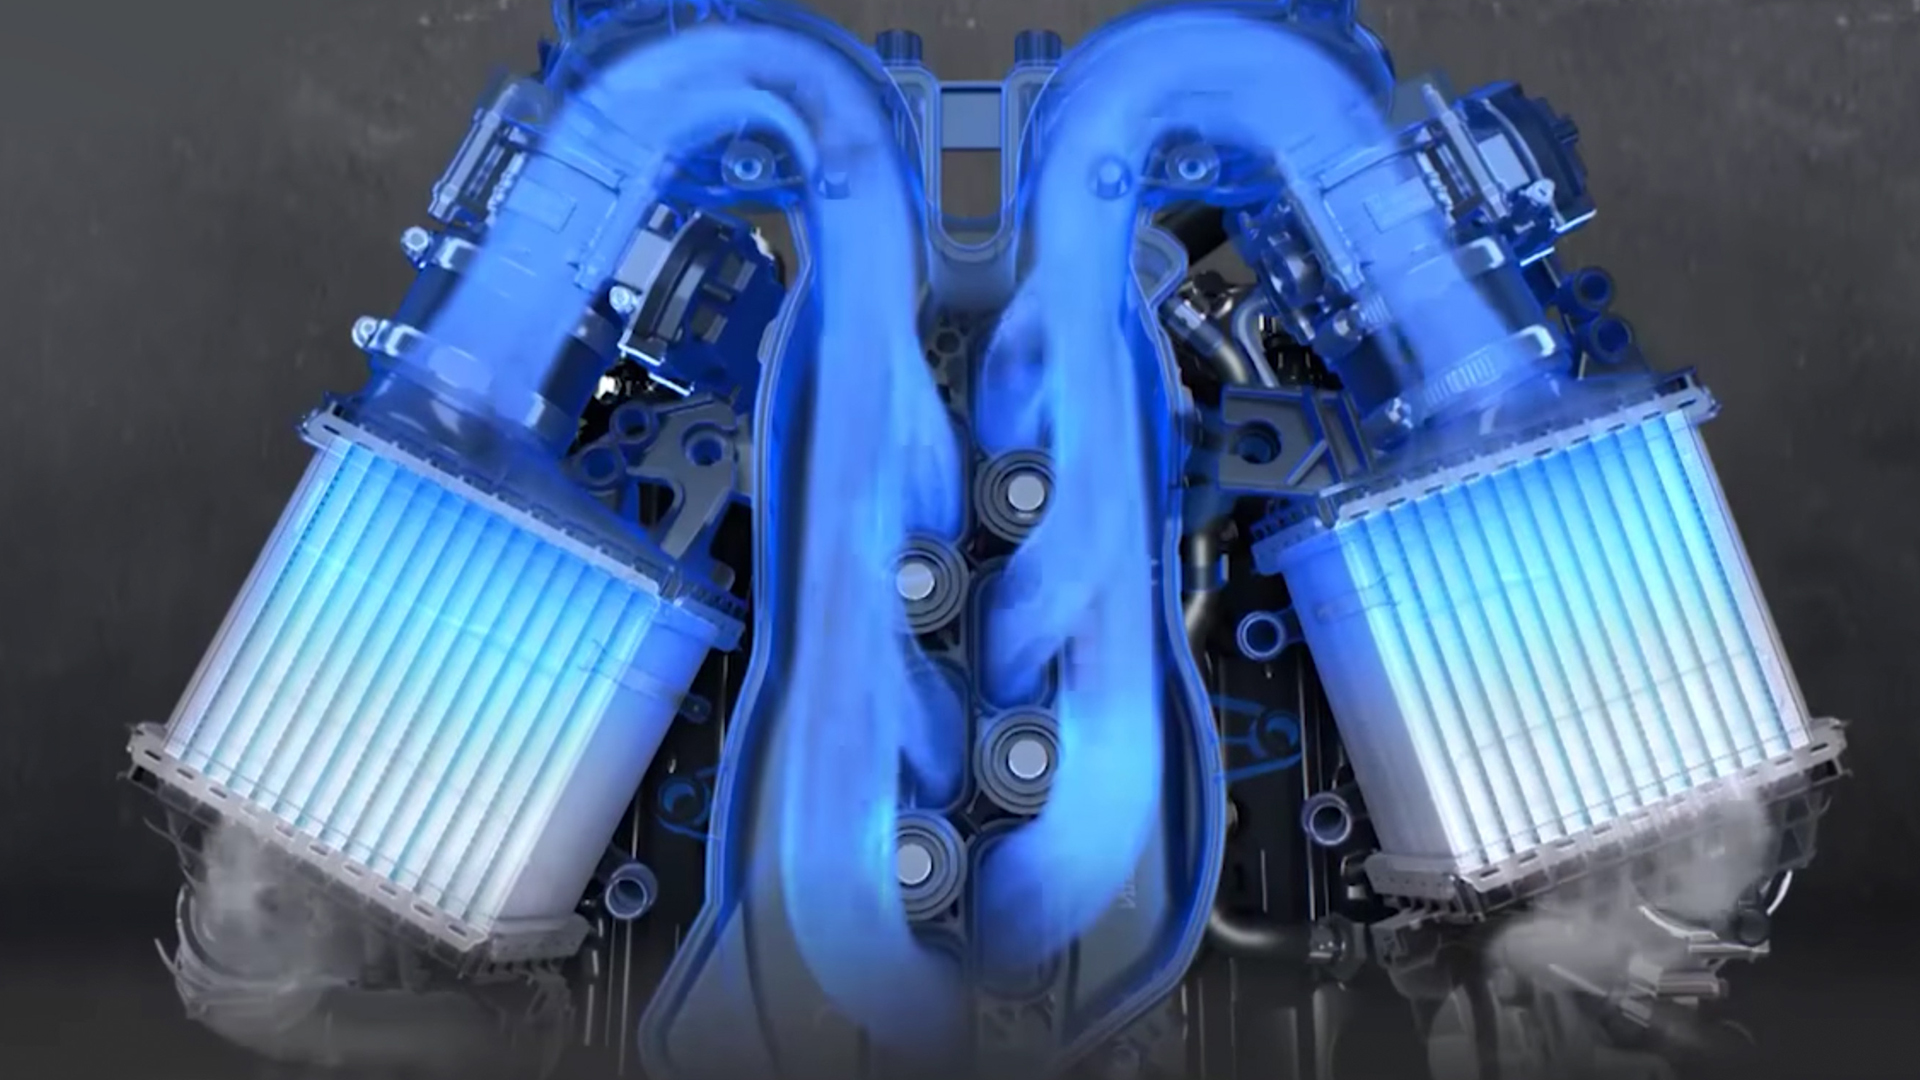 TWIN TURBO V6 ENGINE